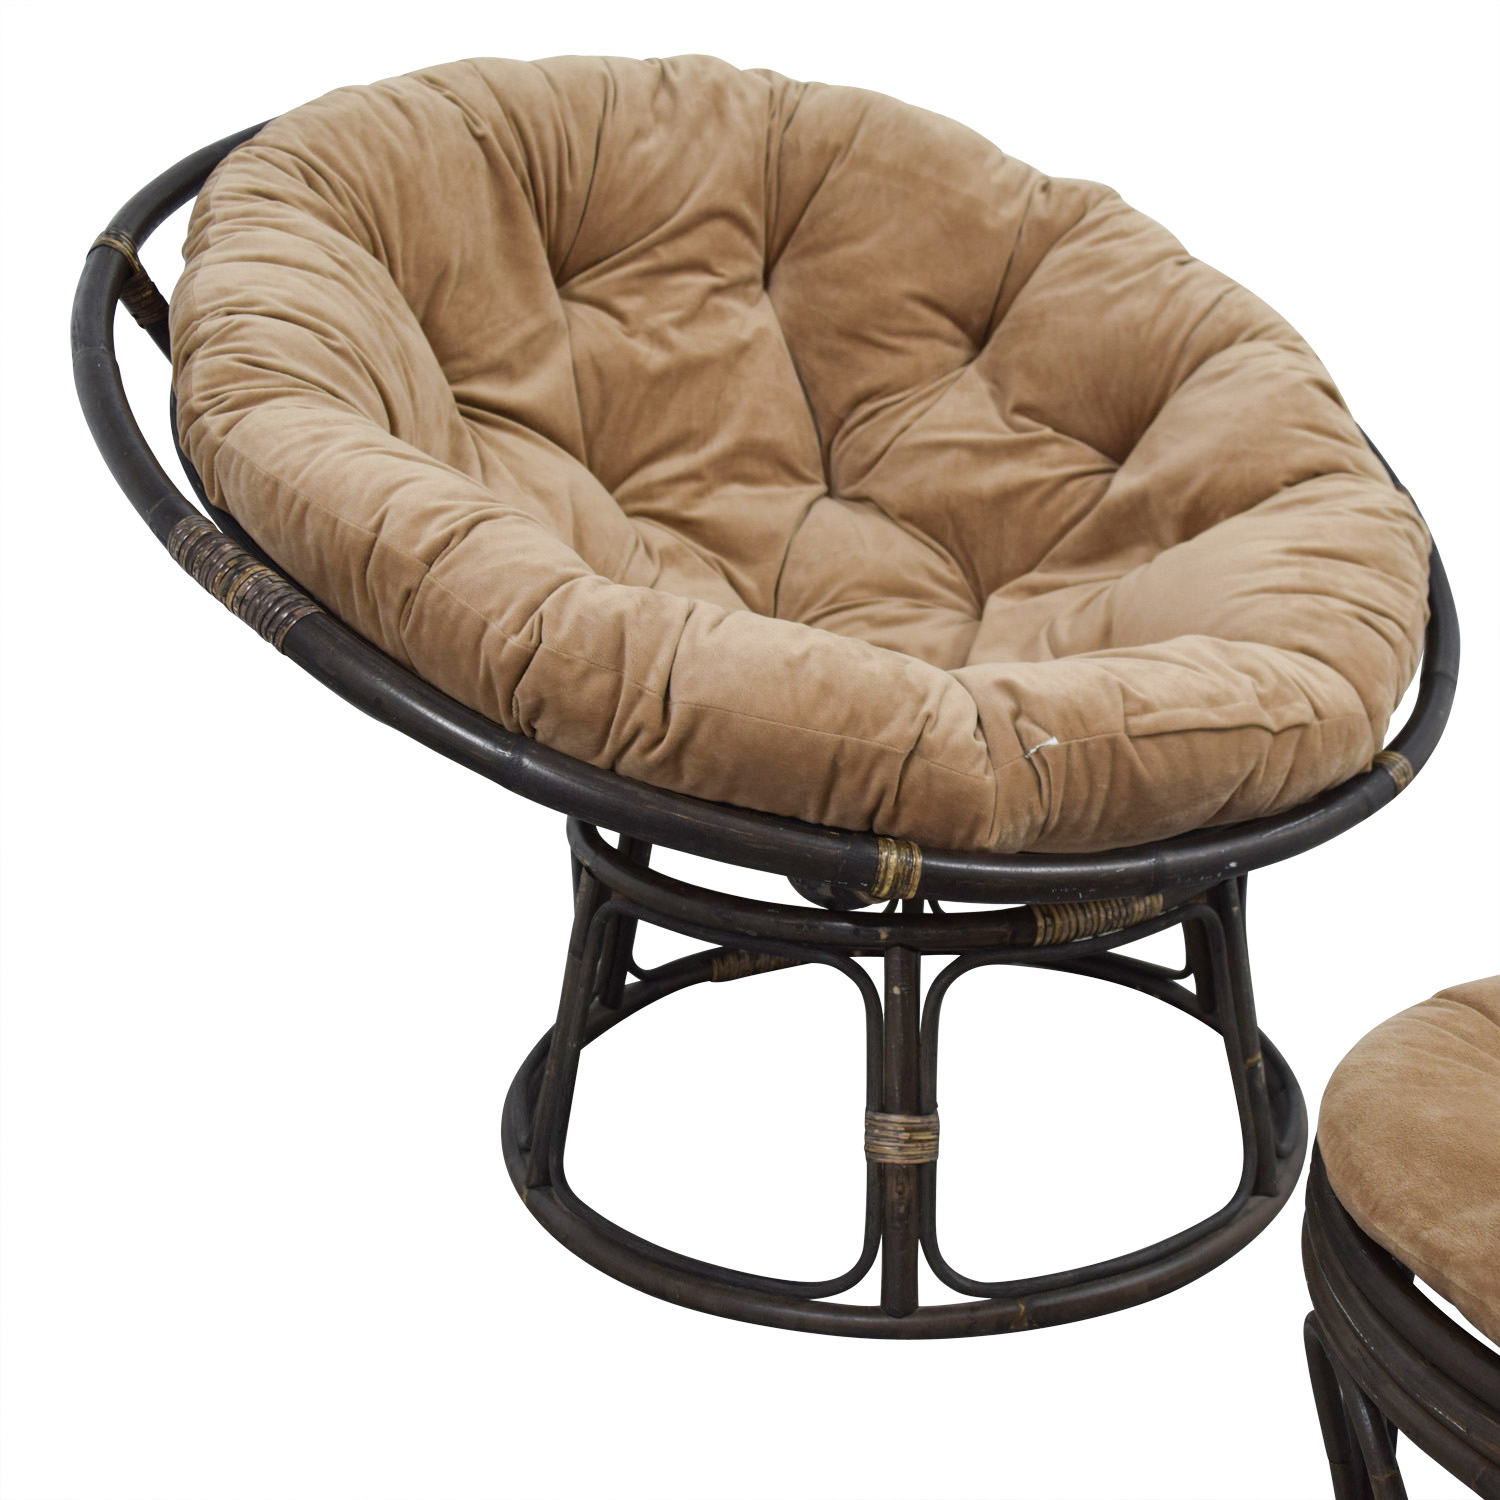 Admirable 63 Off Pier 1 Pier 1 Imports Papasan Brown Lounge Chair And Ottoman Chairs Andrewgaddart Wooden Chair Designs For Living Room Andrewgaddartcom